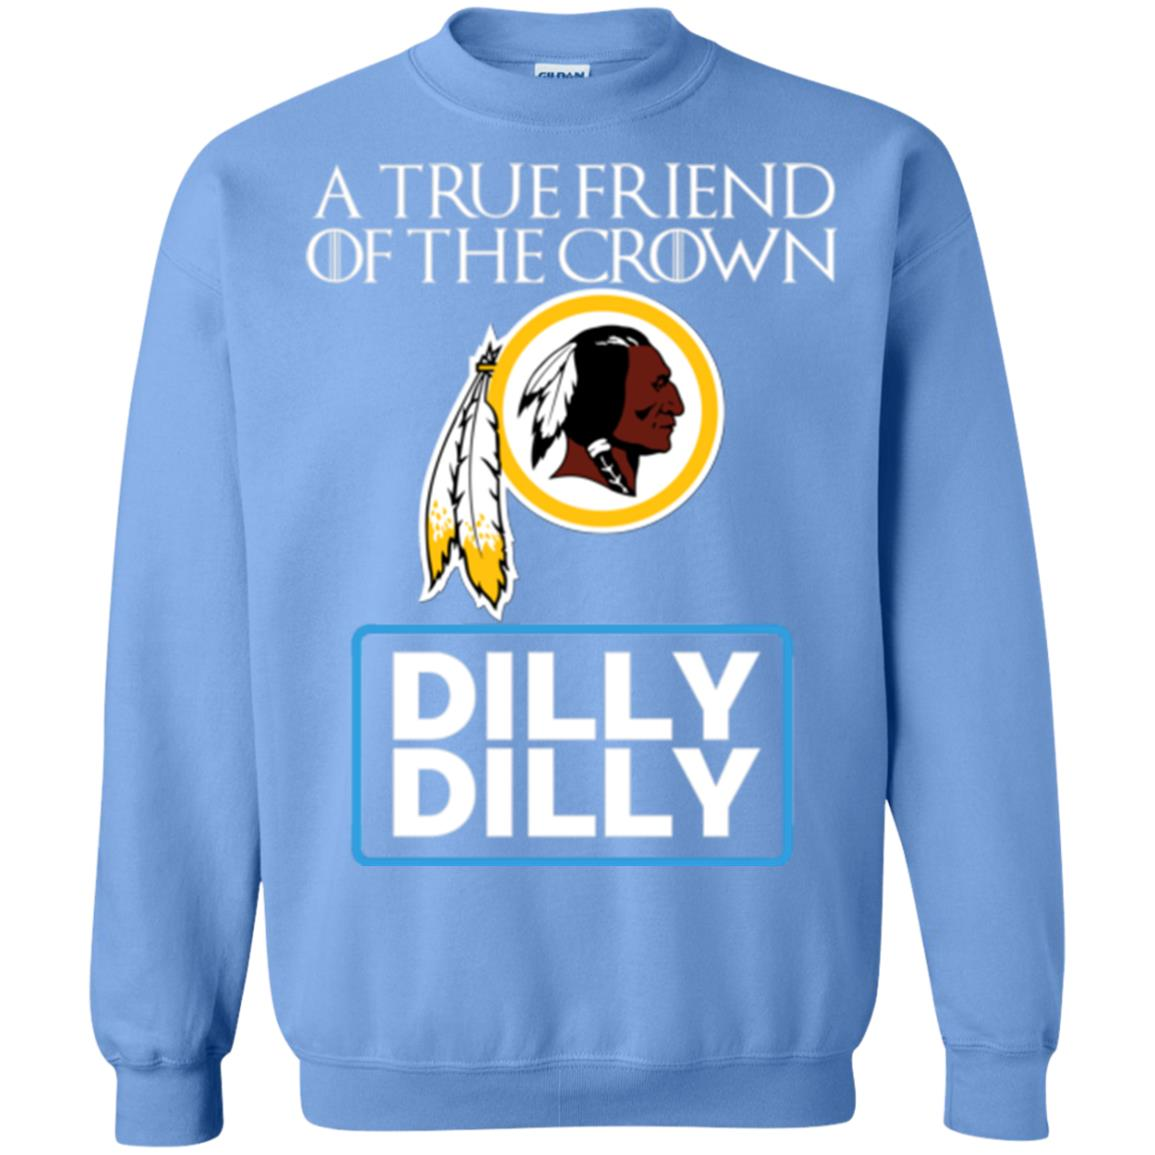 Dilly Dilly T-shirt Friend Of The Washington Redskins King ... 0e5516685